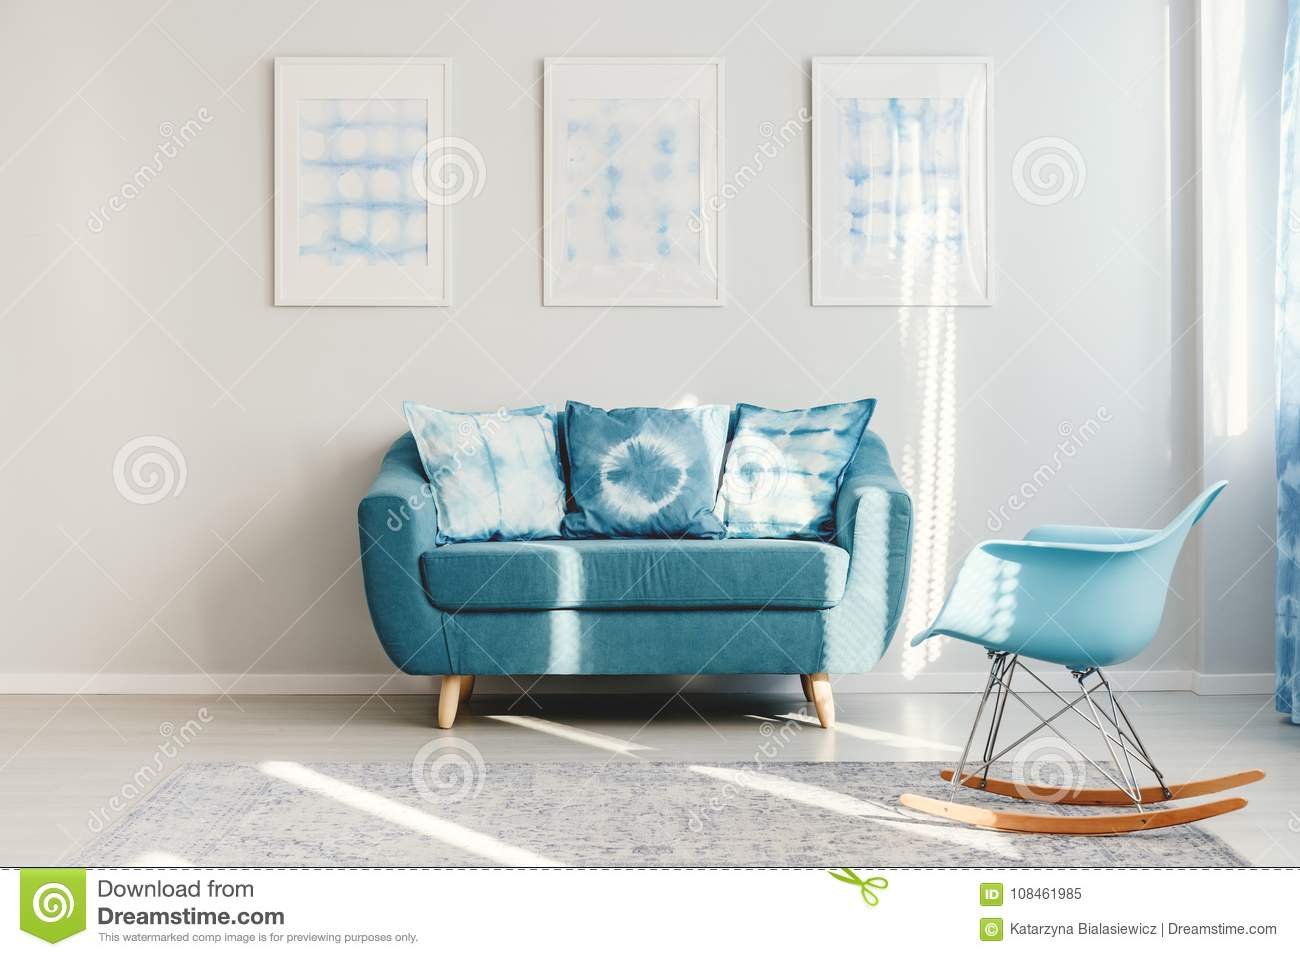 Turquoise Couch In Daily Room Stock Image - Image of room, blue ...